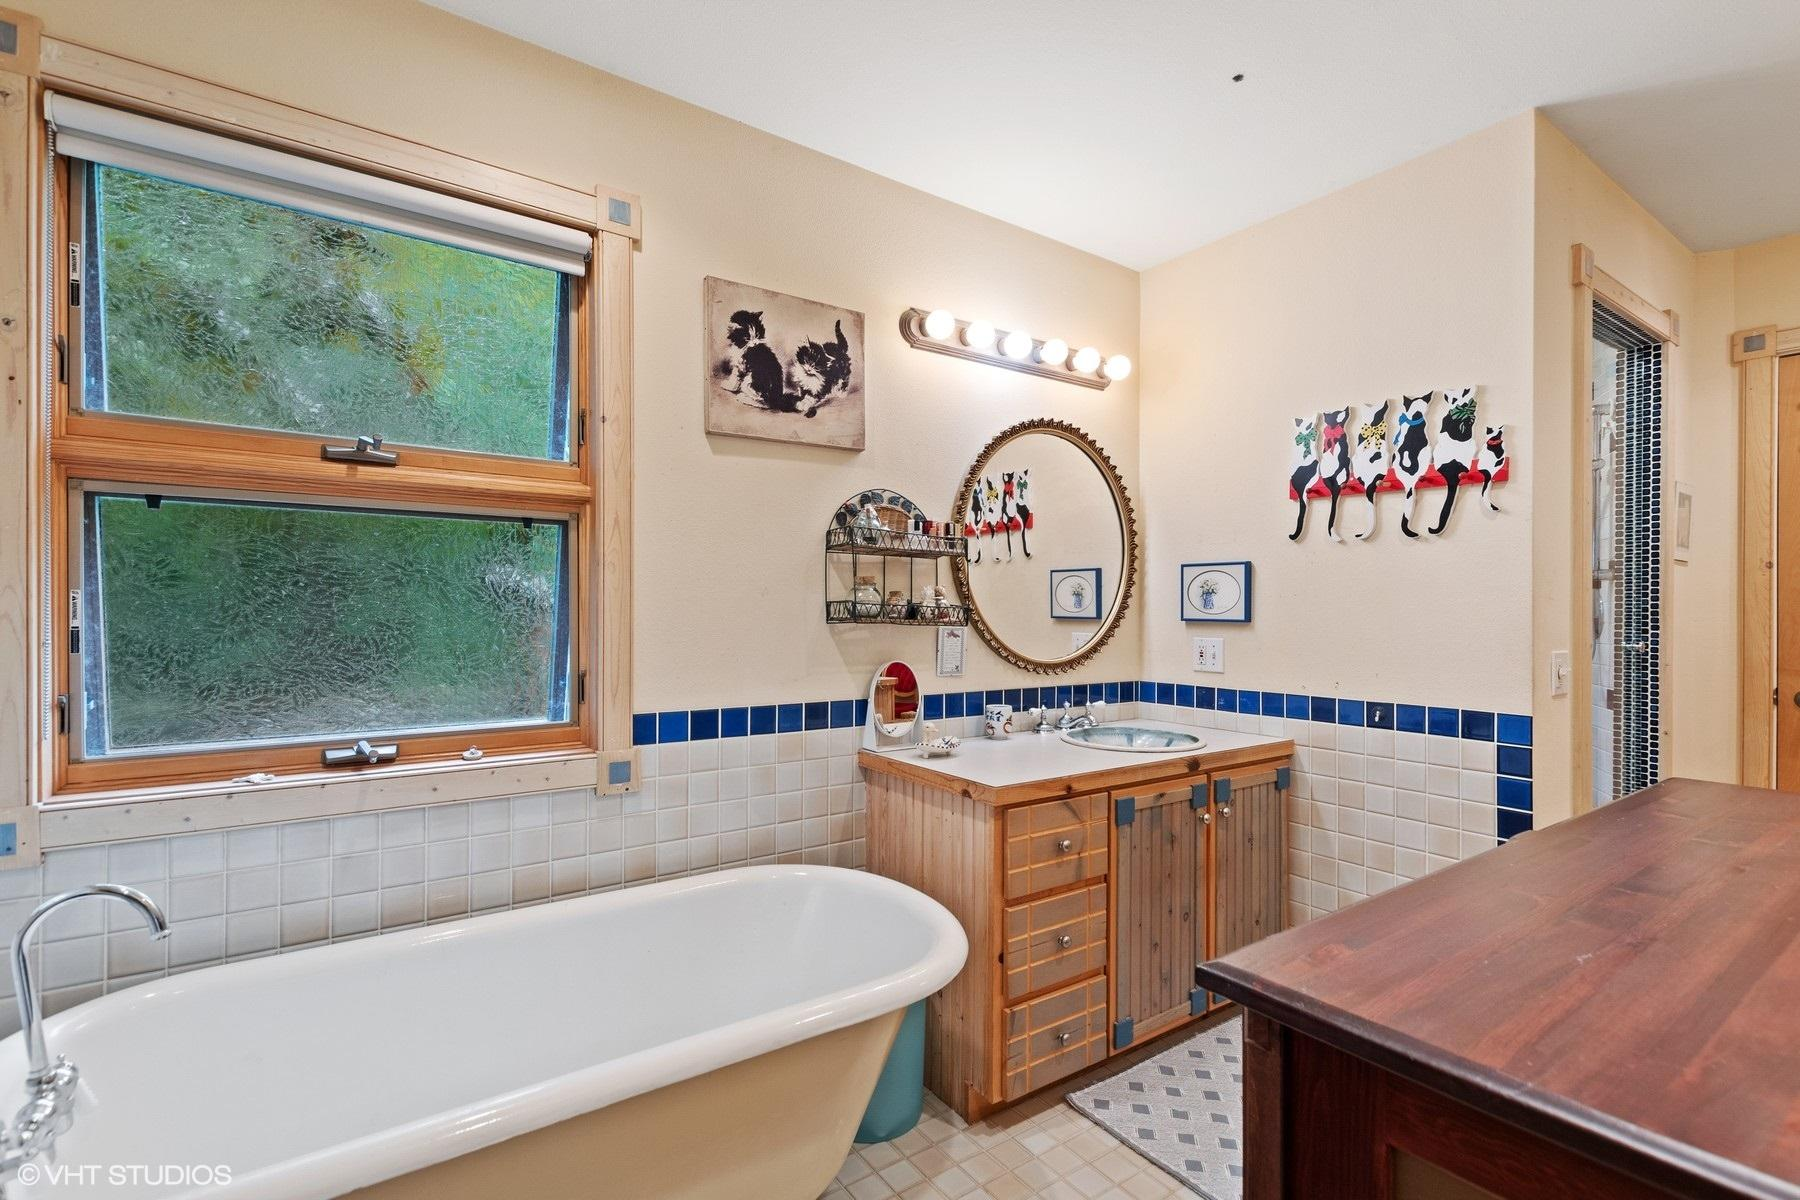 Clawfoot tub and